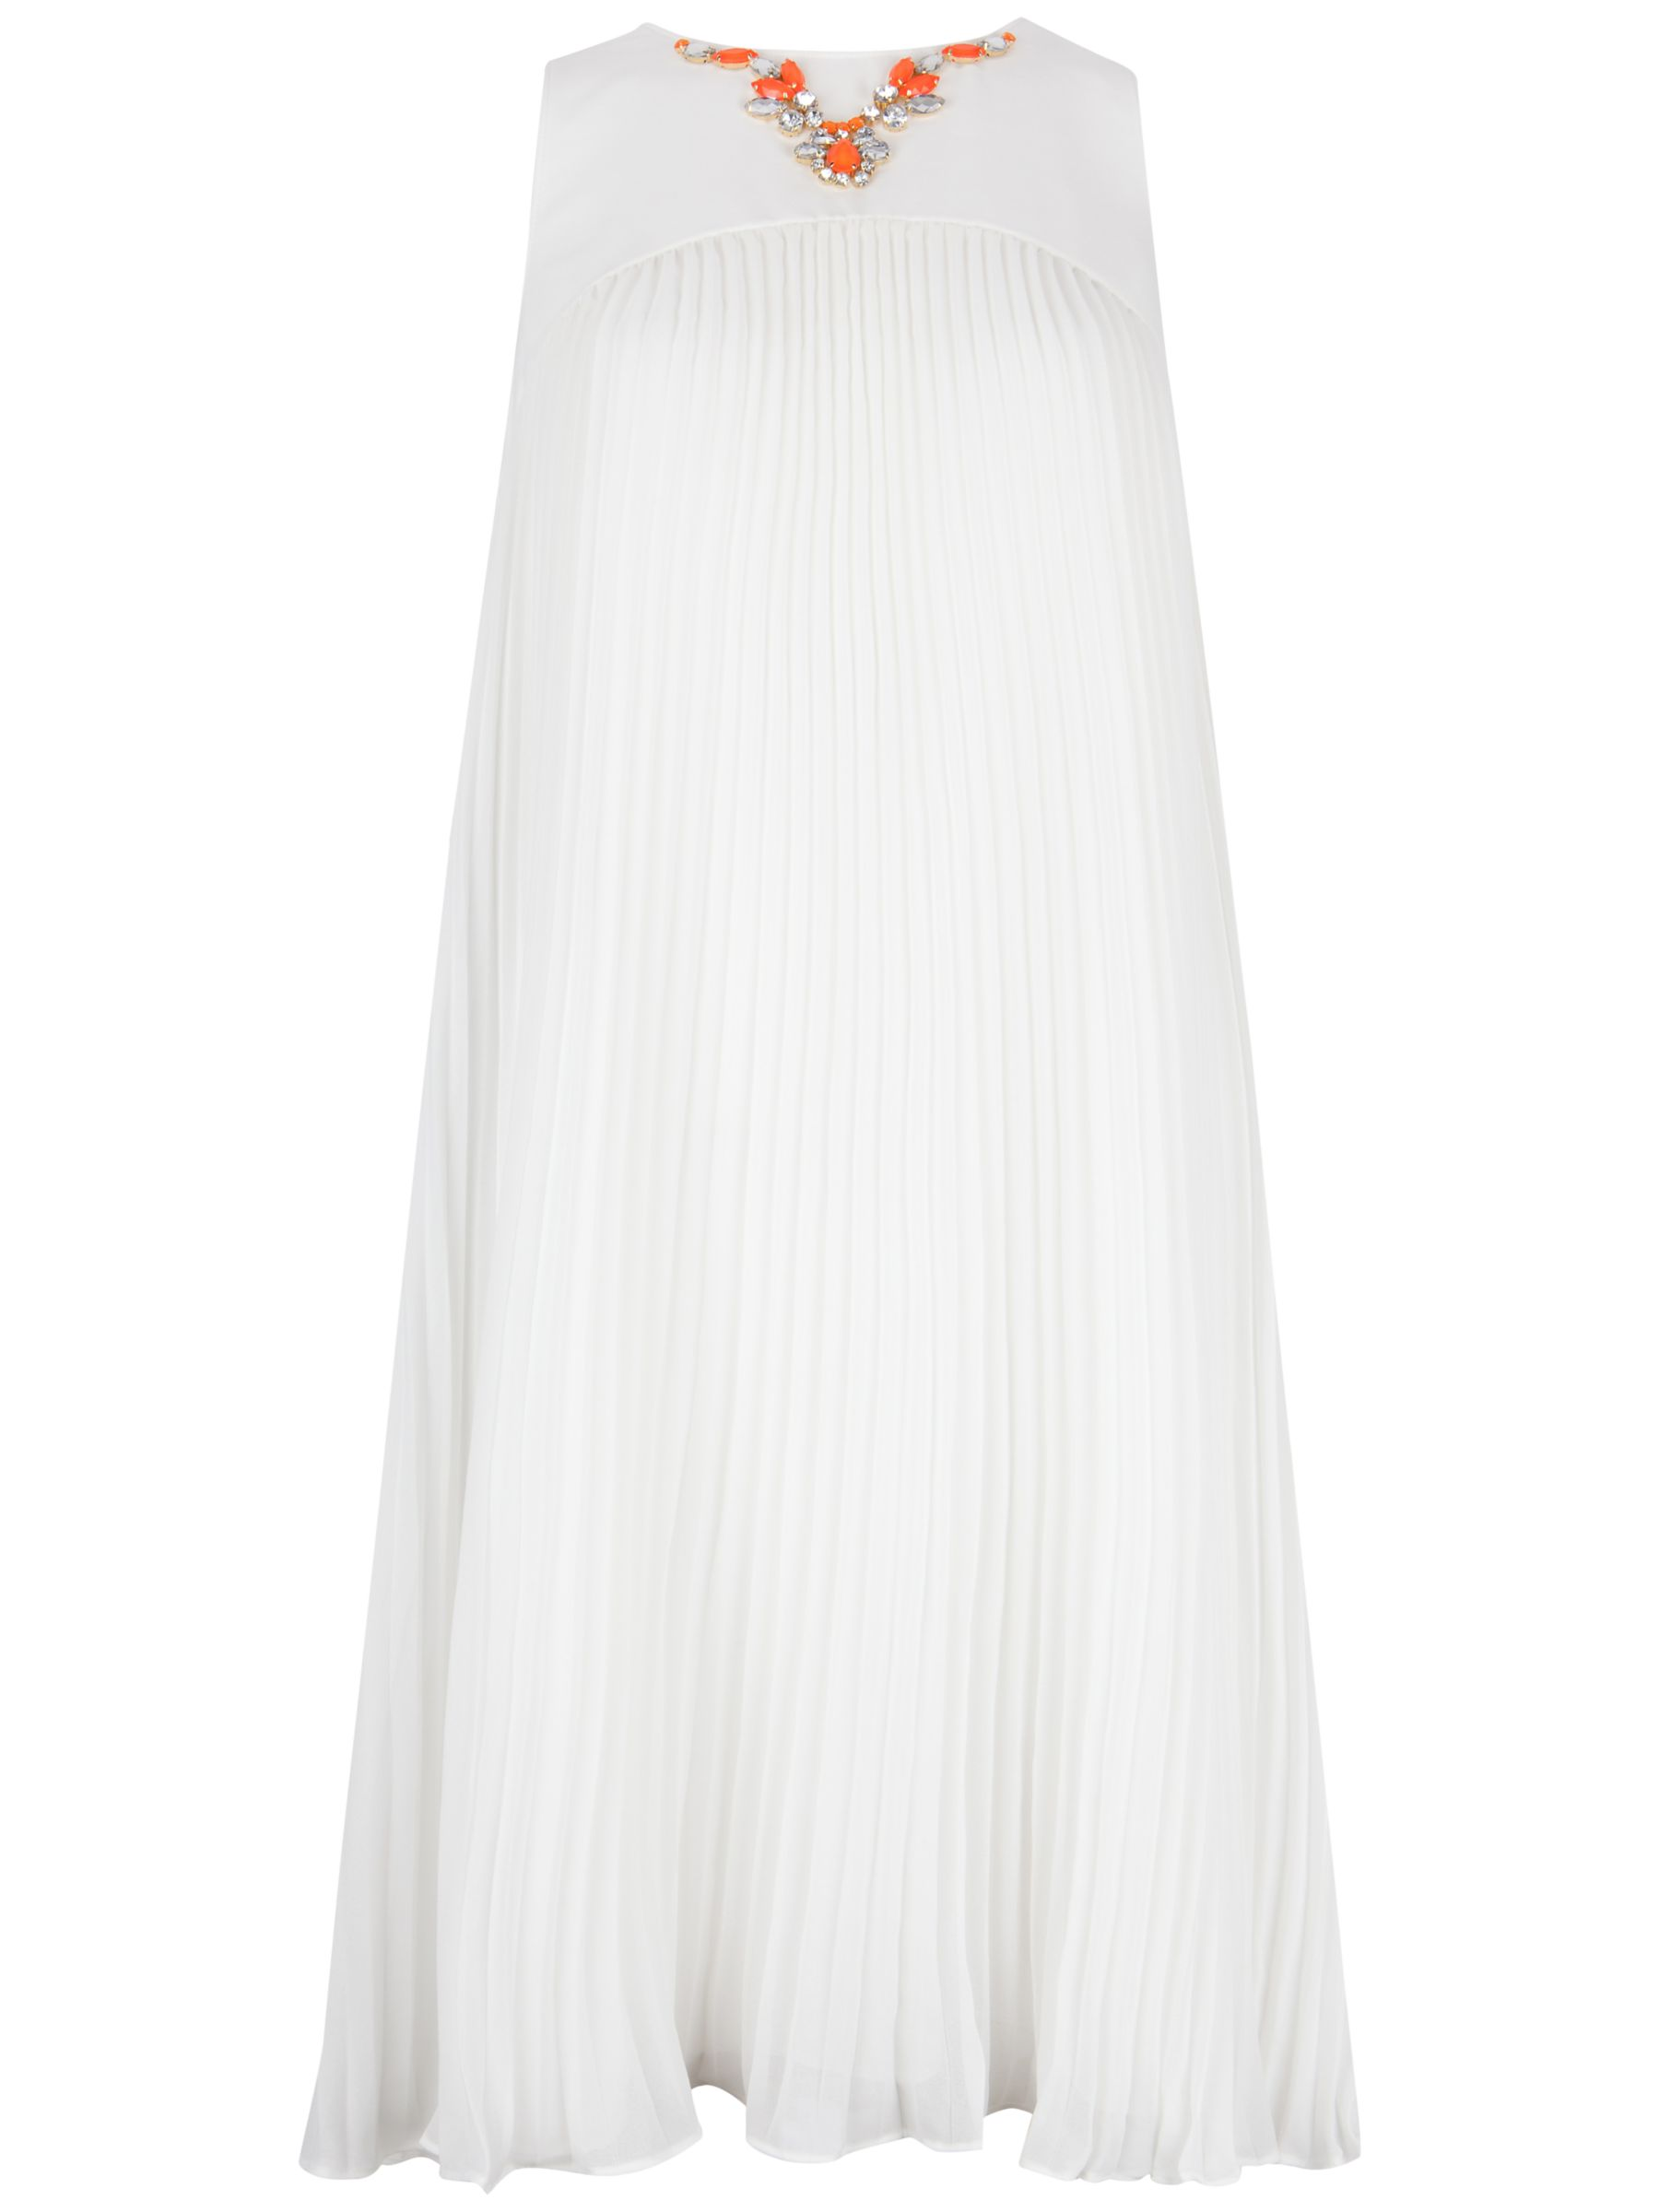 ted baker embellished pleated dress, ted, baker, embellished, pleated, dress, ted baker, white|white|white|white|white|light pink|light pink|light pink|light pink|white|light pink|light pink, 4|5|3|1|2|2|4|1|5|0|3|0, edition magazine, white out, women, womens dresses, crisp whites, fashion magazine, womenswear, men, brands l-z, 1507109